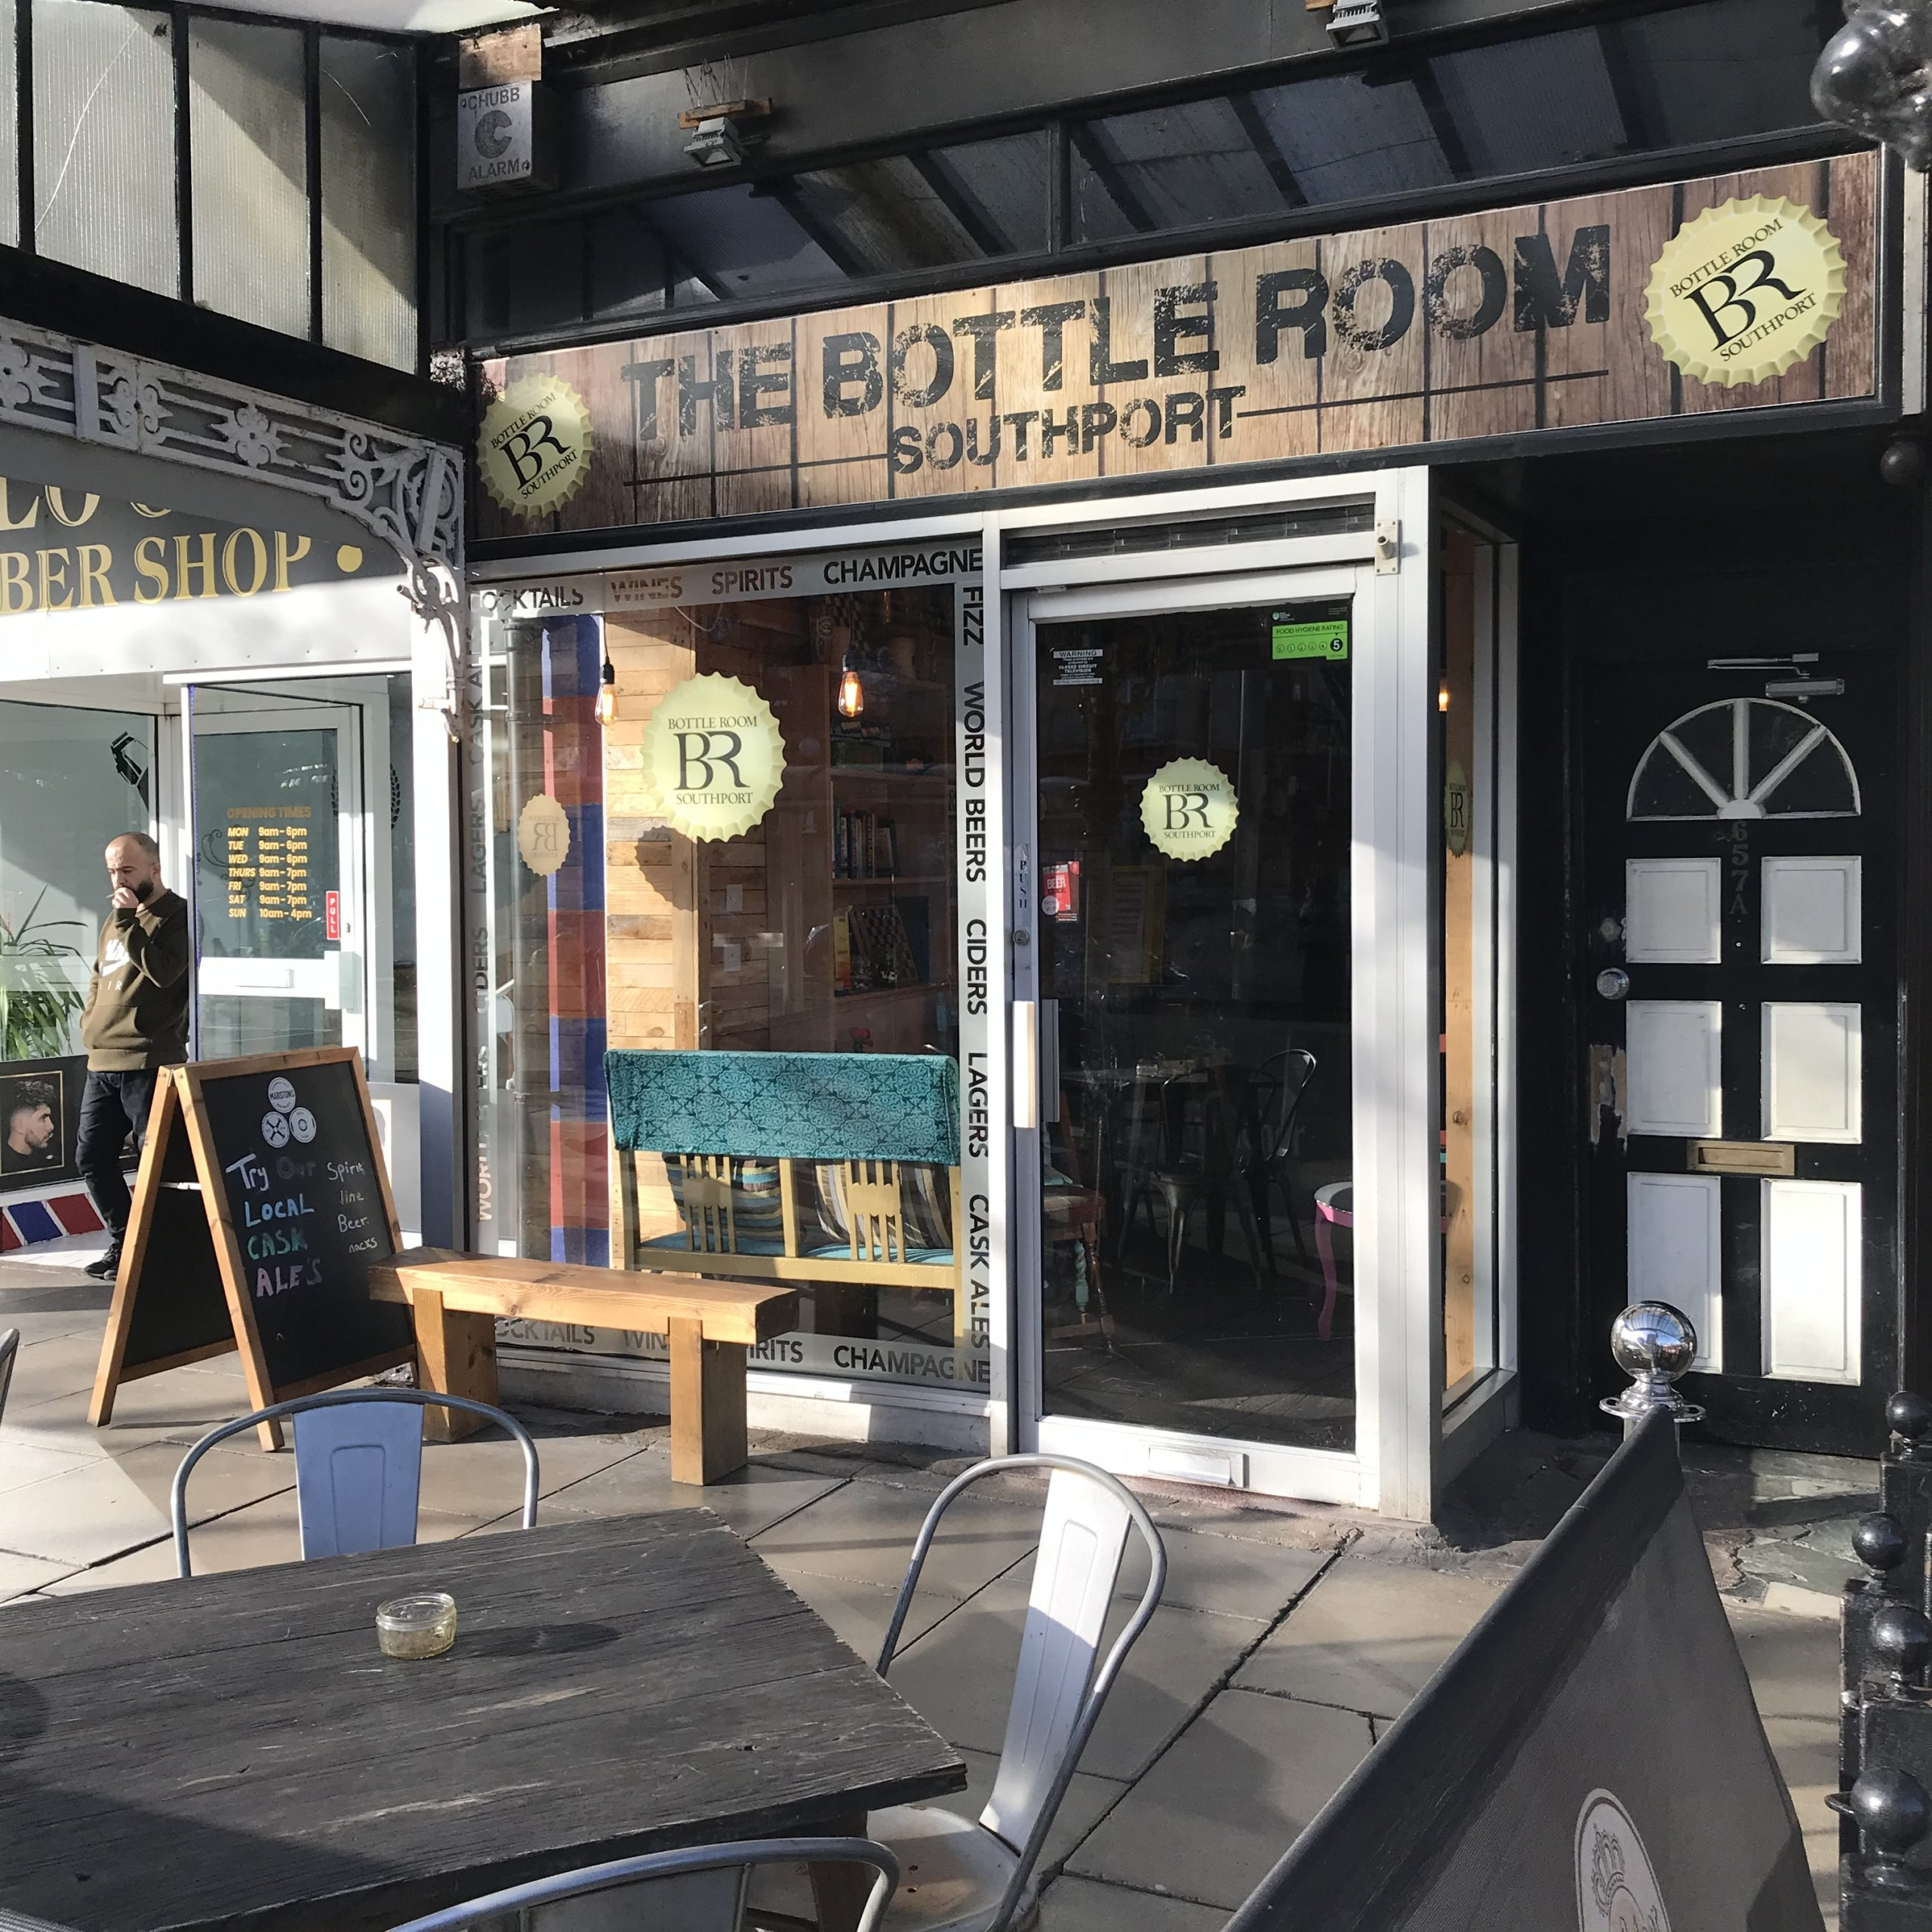 The Bottle Room on Lord Street in Southport, one of the businesses in the area's Northern Quarter. Photo by Andrew Brown Media